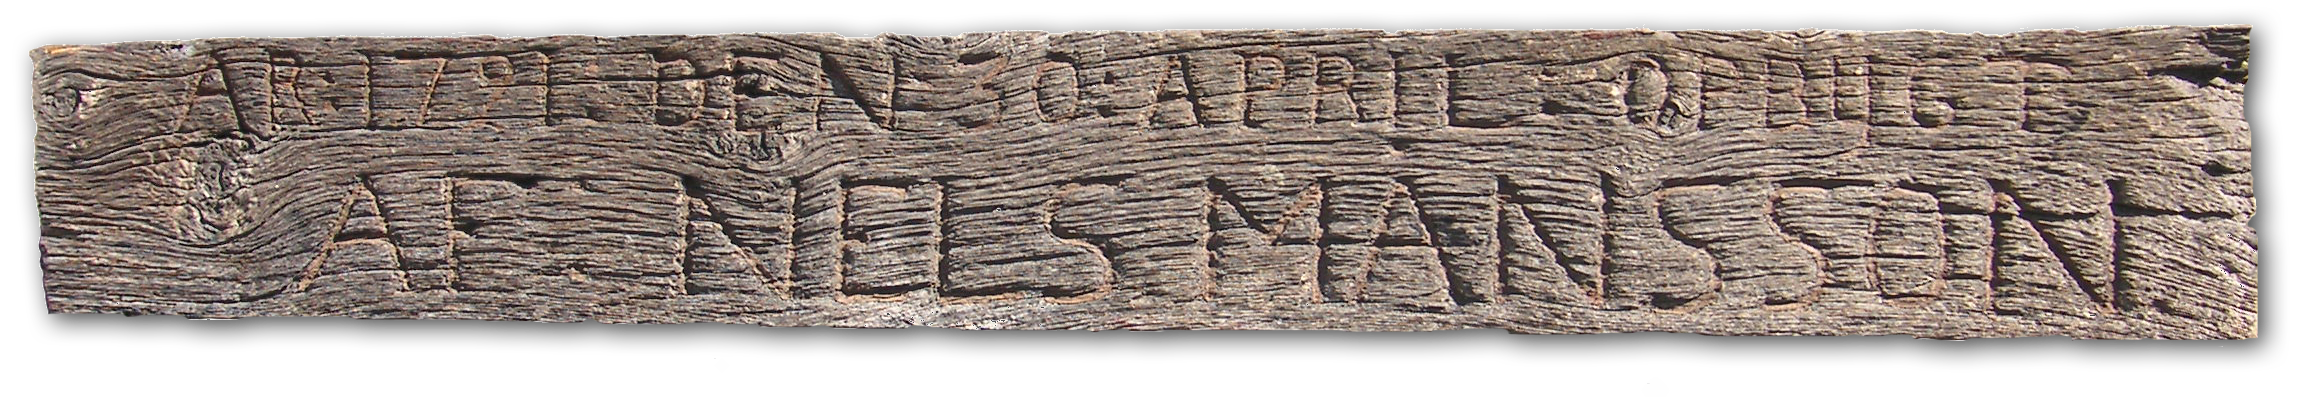 Nels Månsson's wooden sign from 1721.